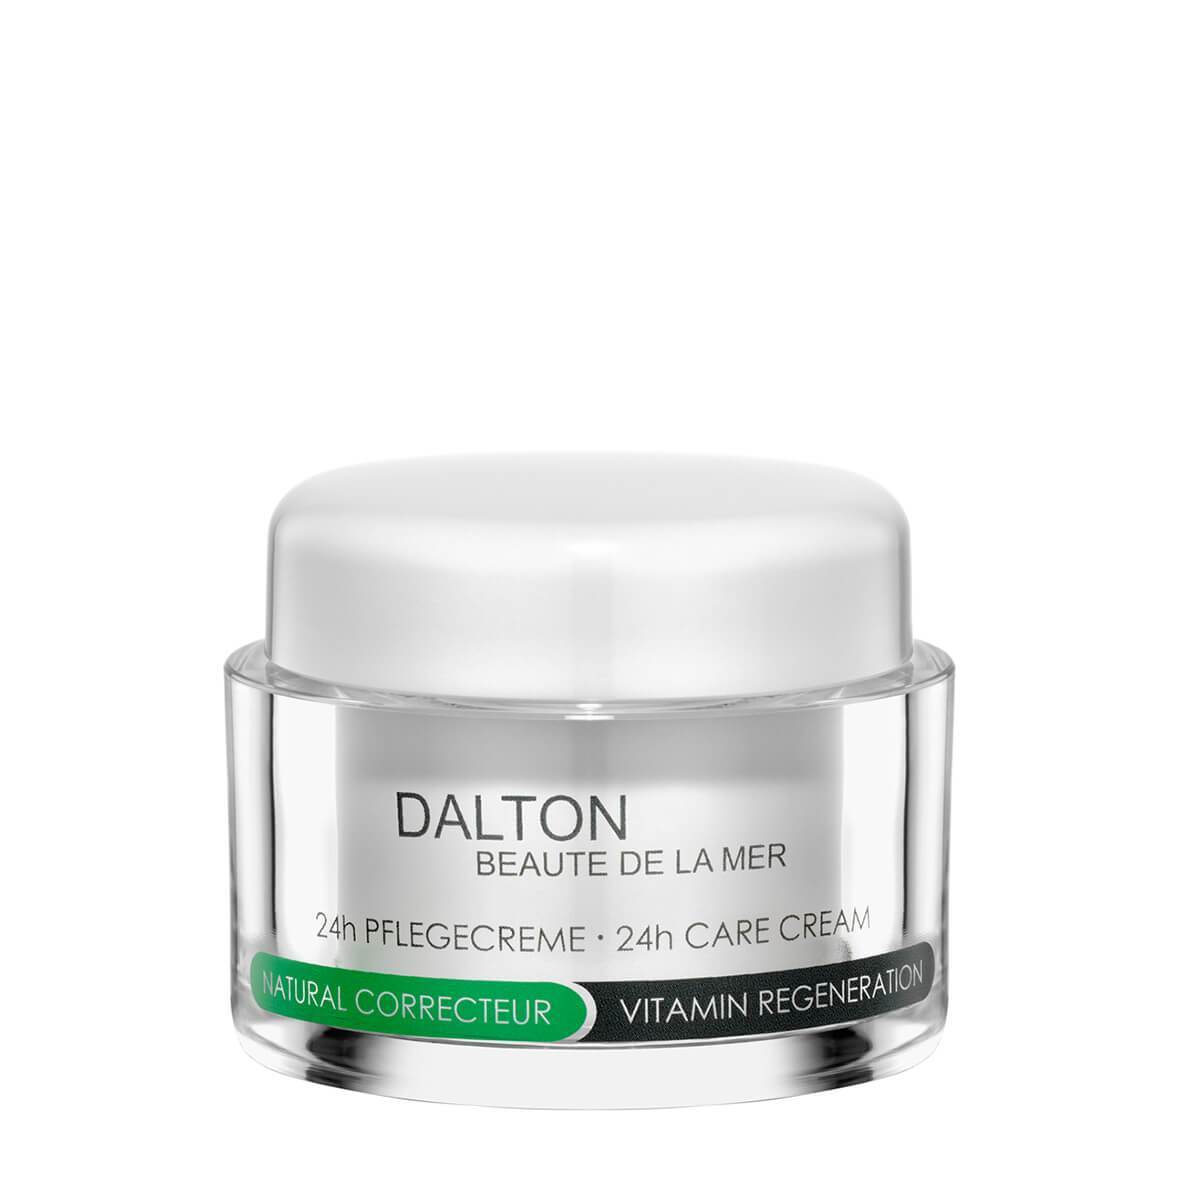 Cremă, Natural Correcteur 24h Care Cream 50ml., Dalton Marine Cosmetics, Era Cosmetics